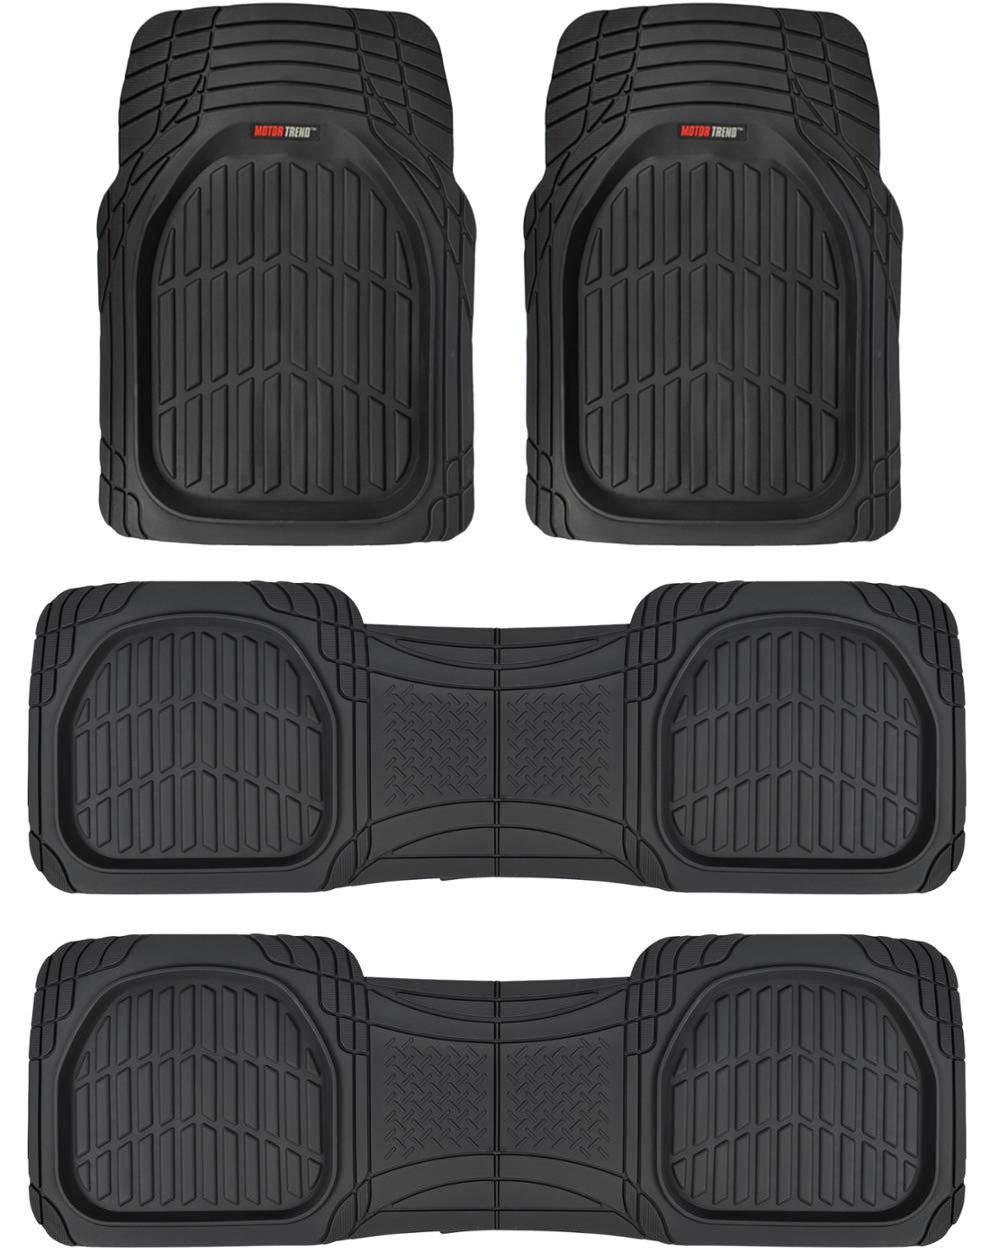 Motor Trend MT-923-920 Black FlexTough Contour Liners-Deep Dish Heavy Duty Rubber Floor Mats for 3 Row Car SUV Truck /& Van-All Weather Protection